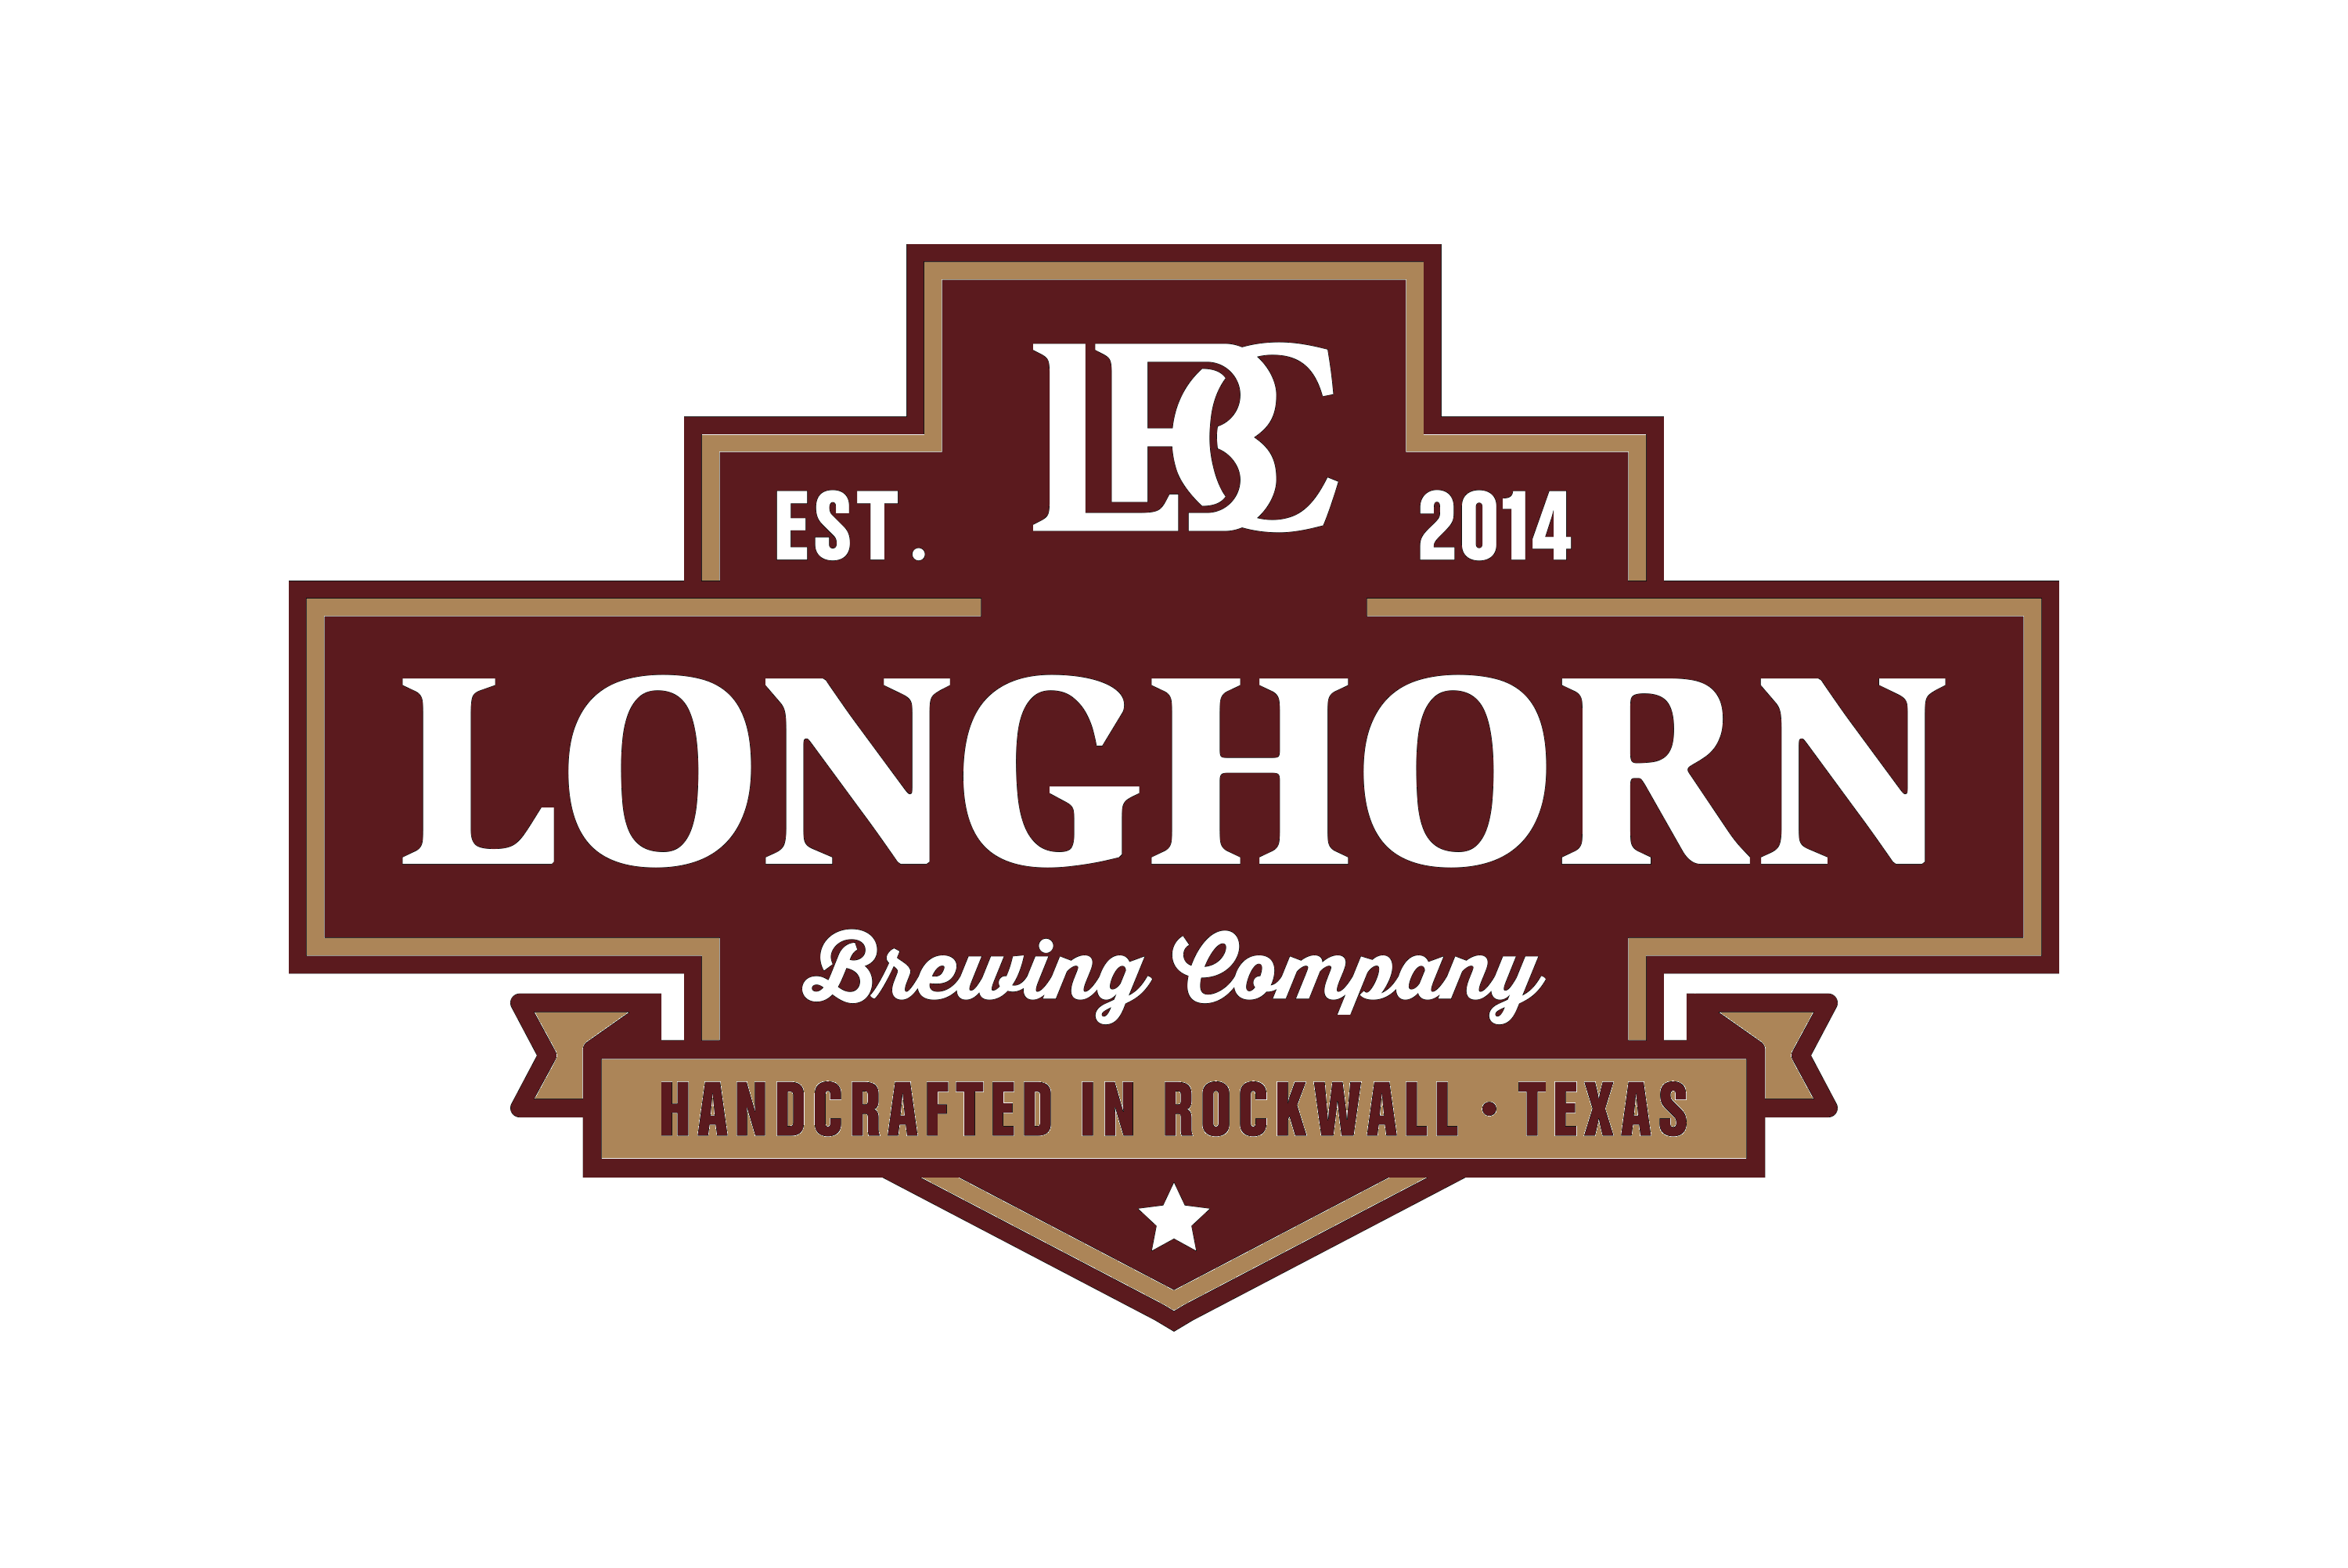 Longhorn Brewing Company - Rockwall Texas Craft Beer Brewery Logo